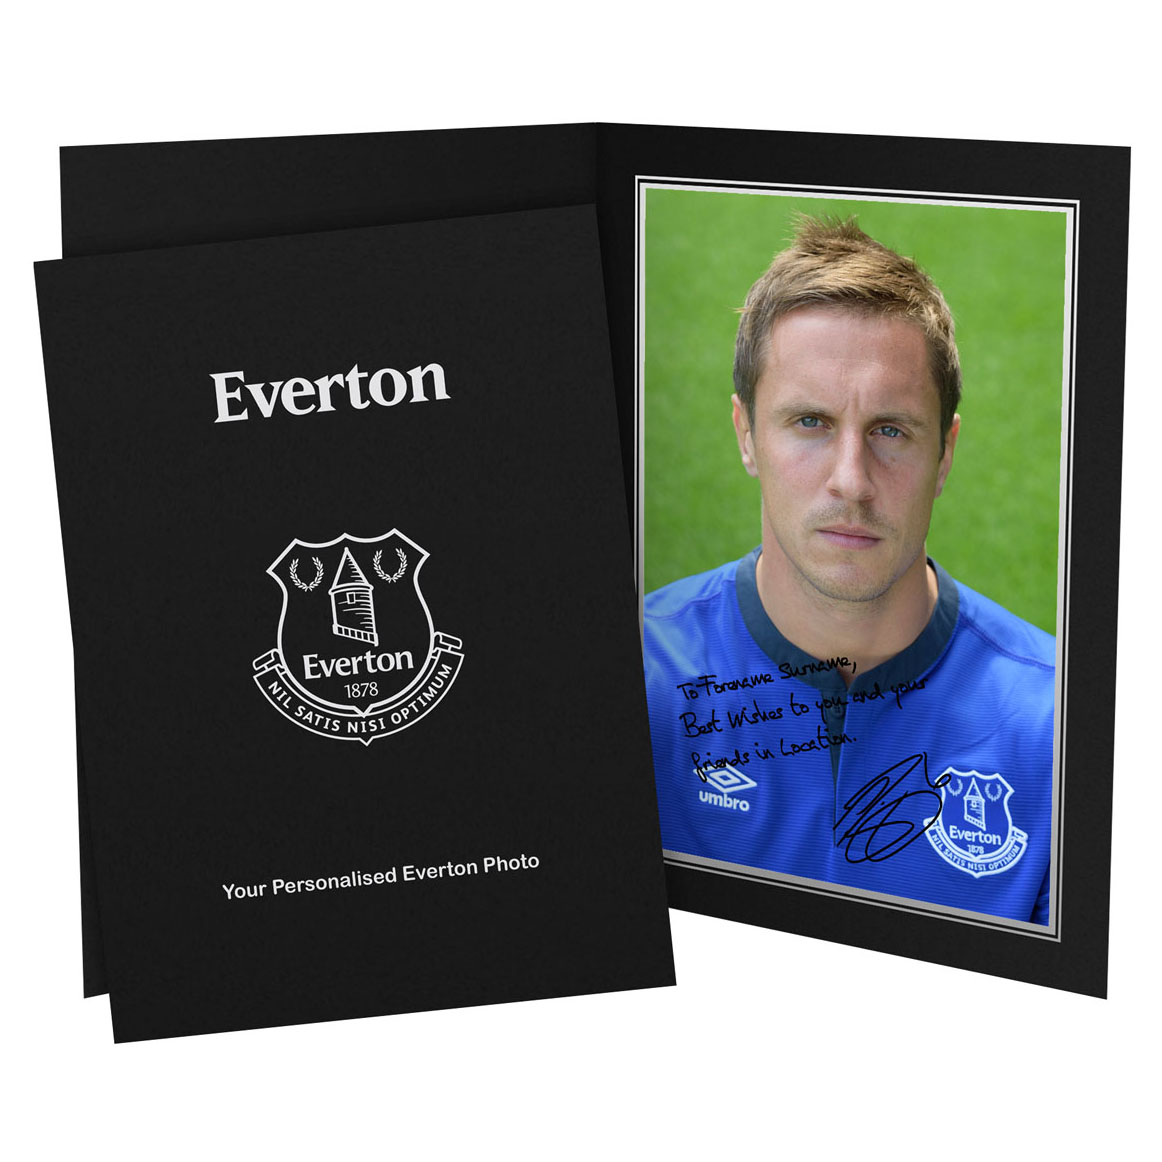 Everton Personalised Signature Photo in Presentation Folder - Jagielka